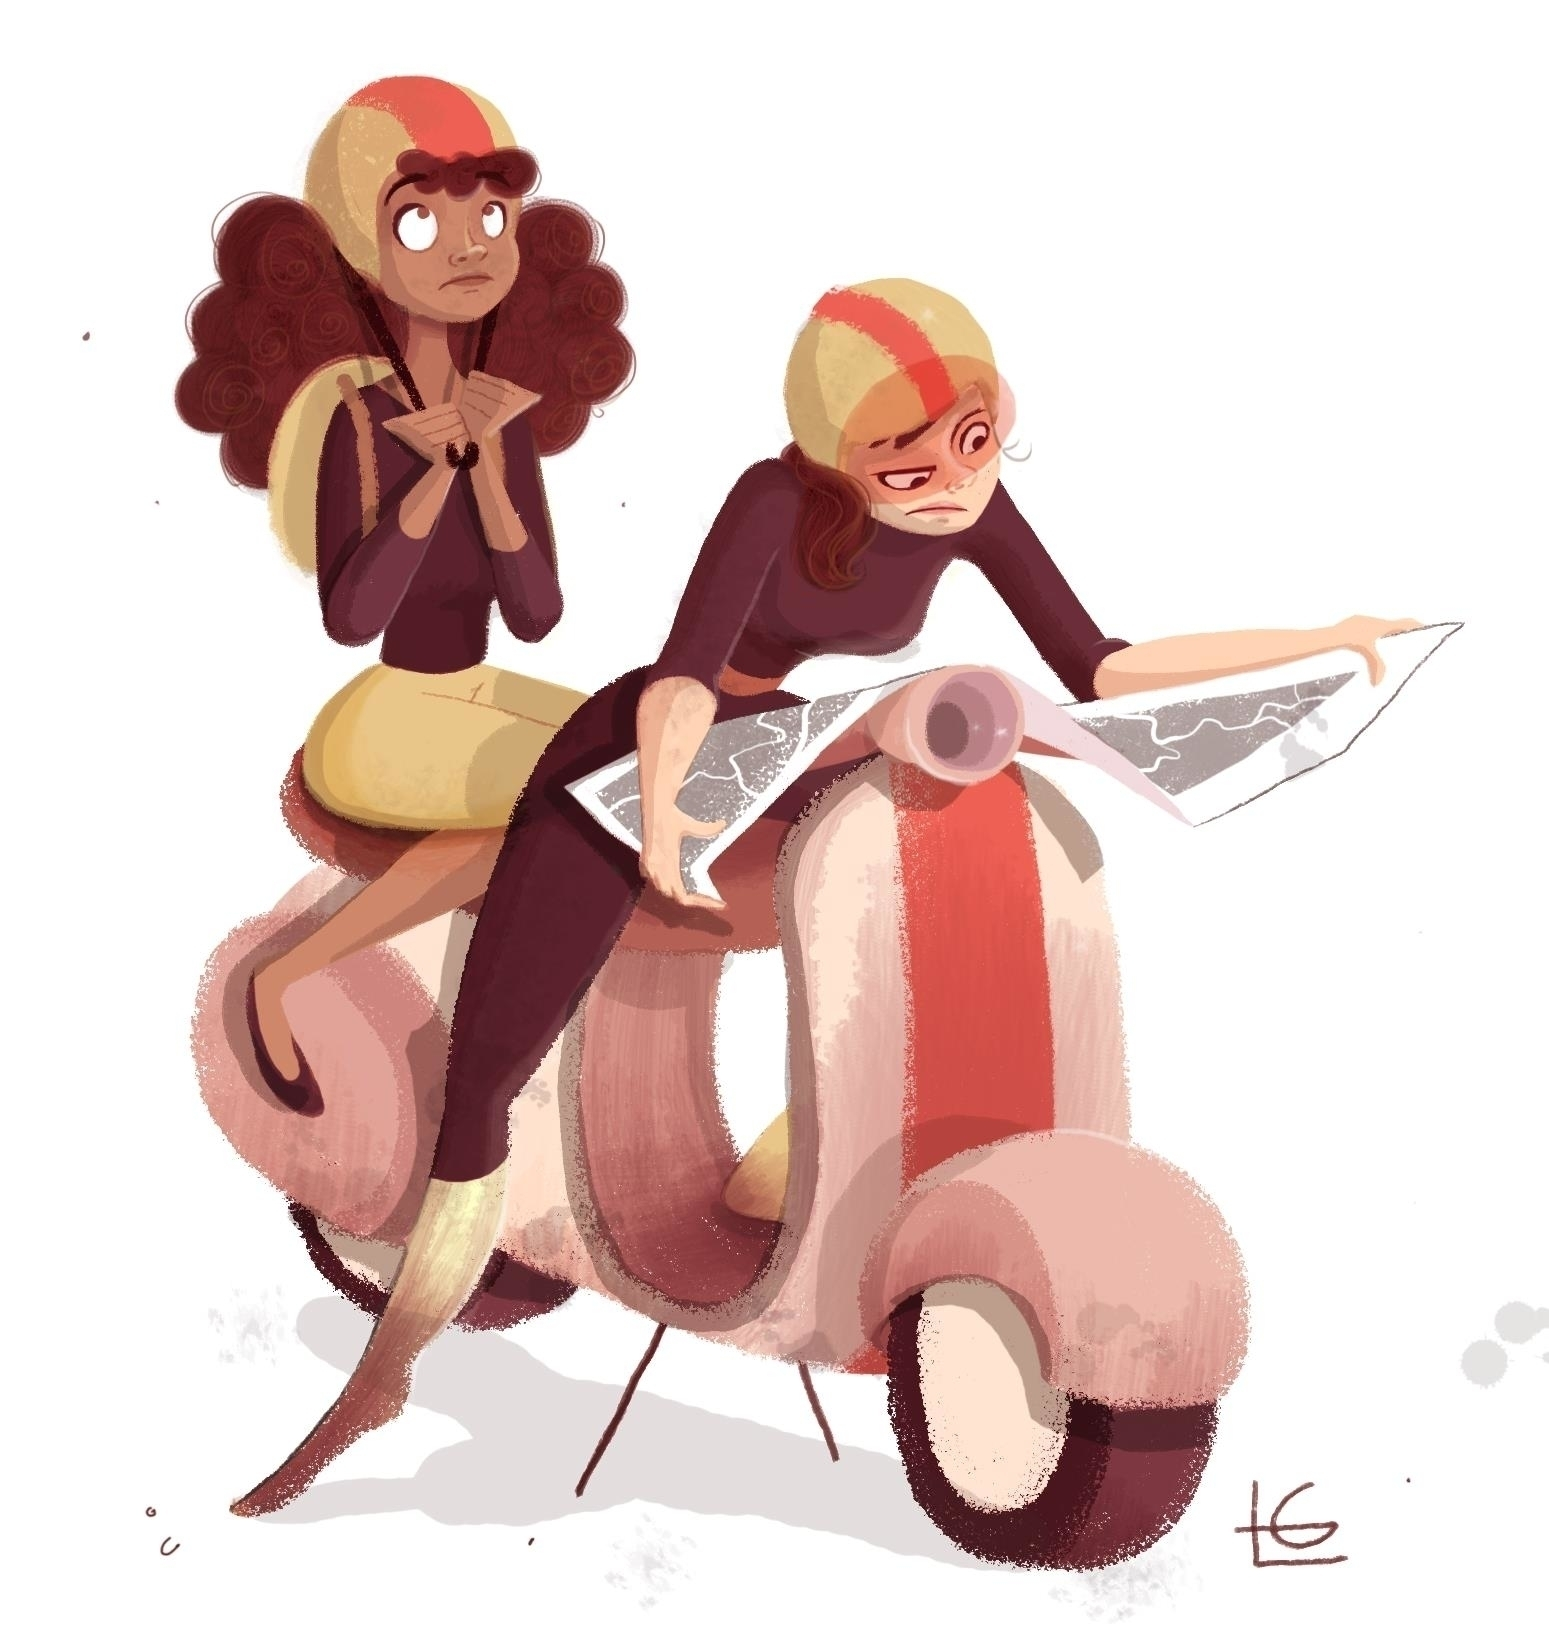 Scooter Girls - girls, illustration - estrelalourenco | ello